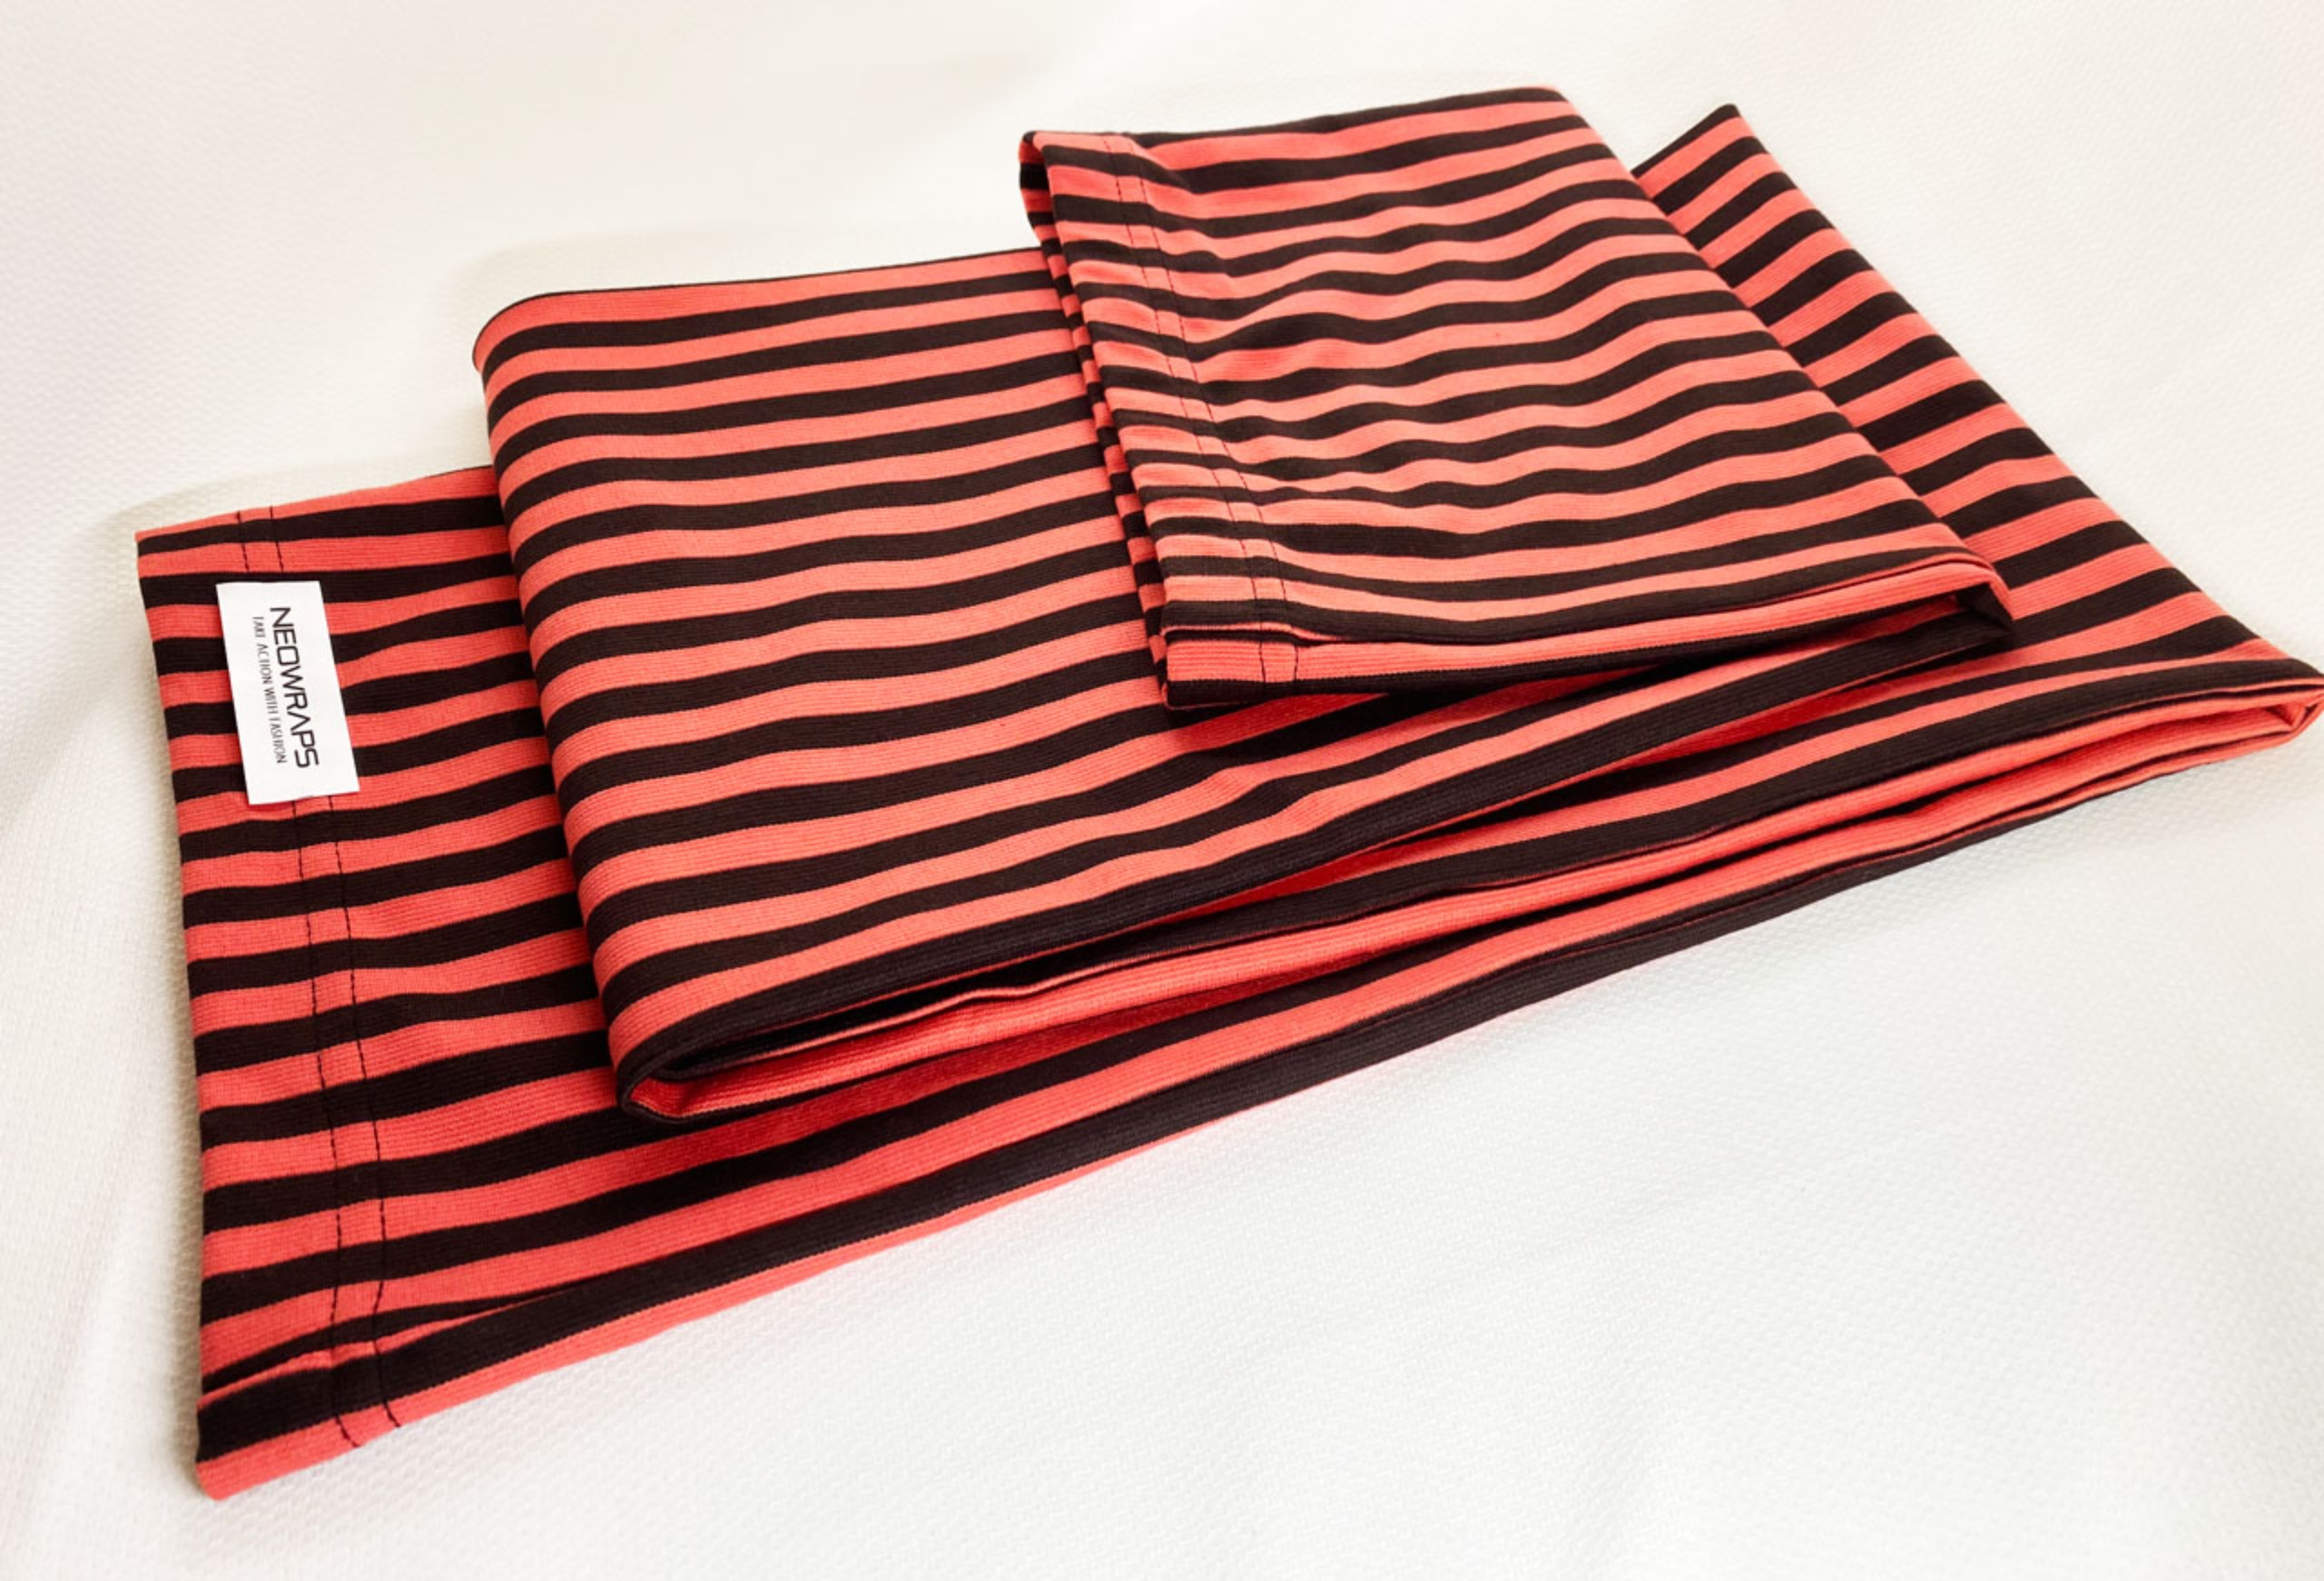 NEOWRAPS | STRIPED VERTICAL | RED & DARK GRAY